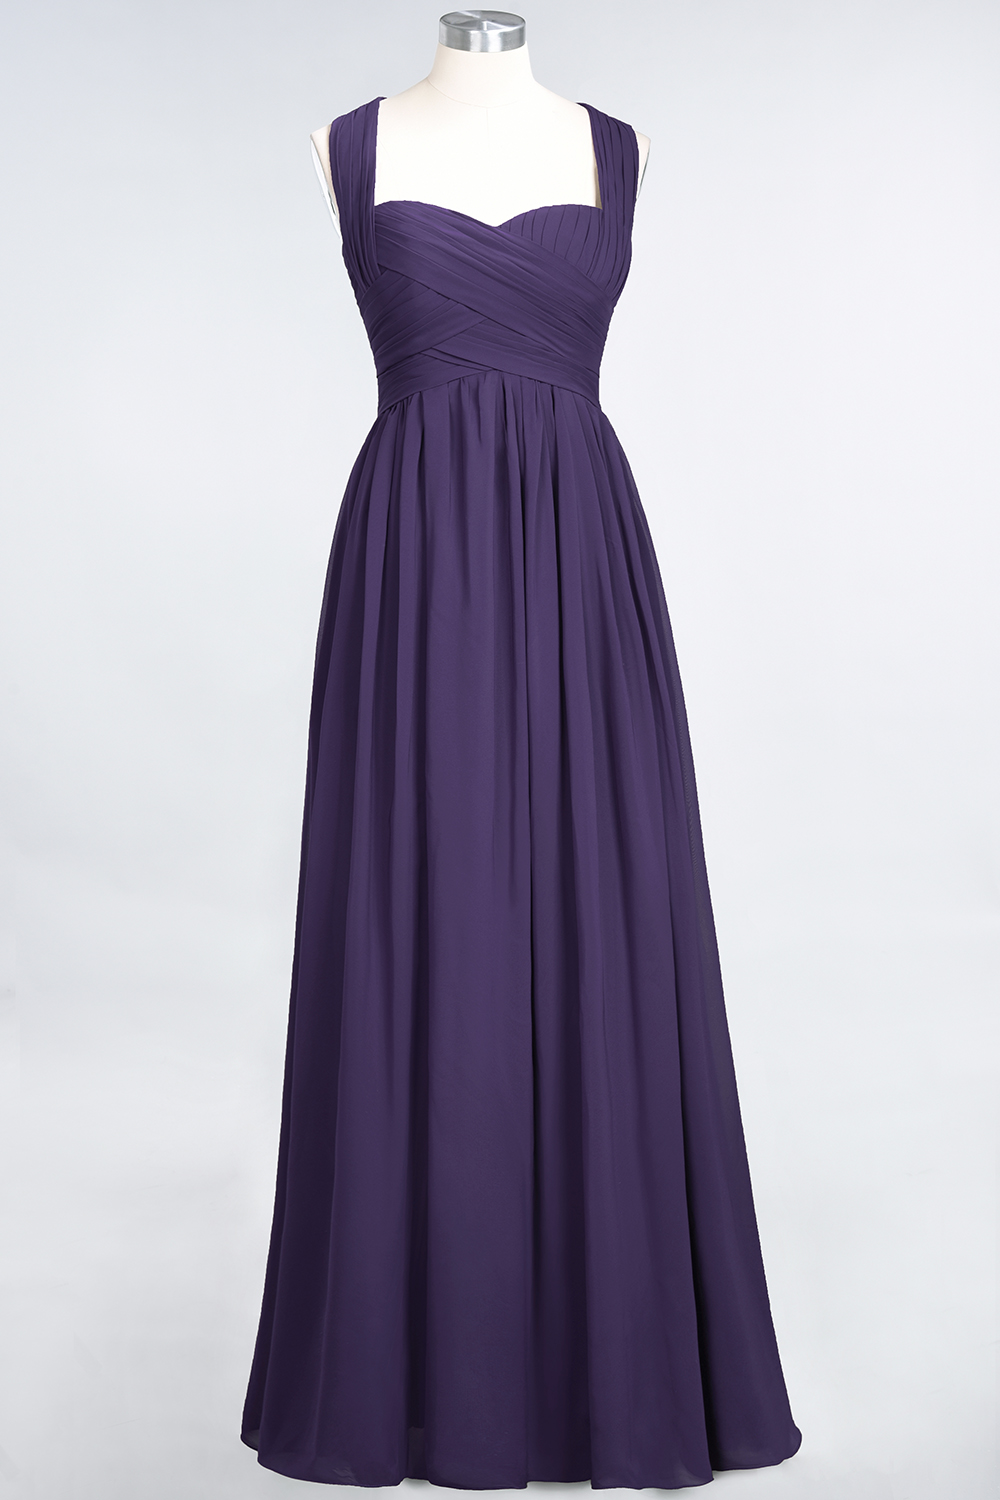 BMbridal Chic Tiered Sweetheart Cap-Sleeves Bungurdy Bridesmaid Dresses